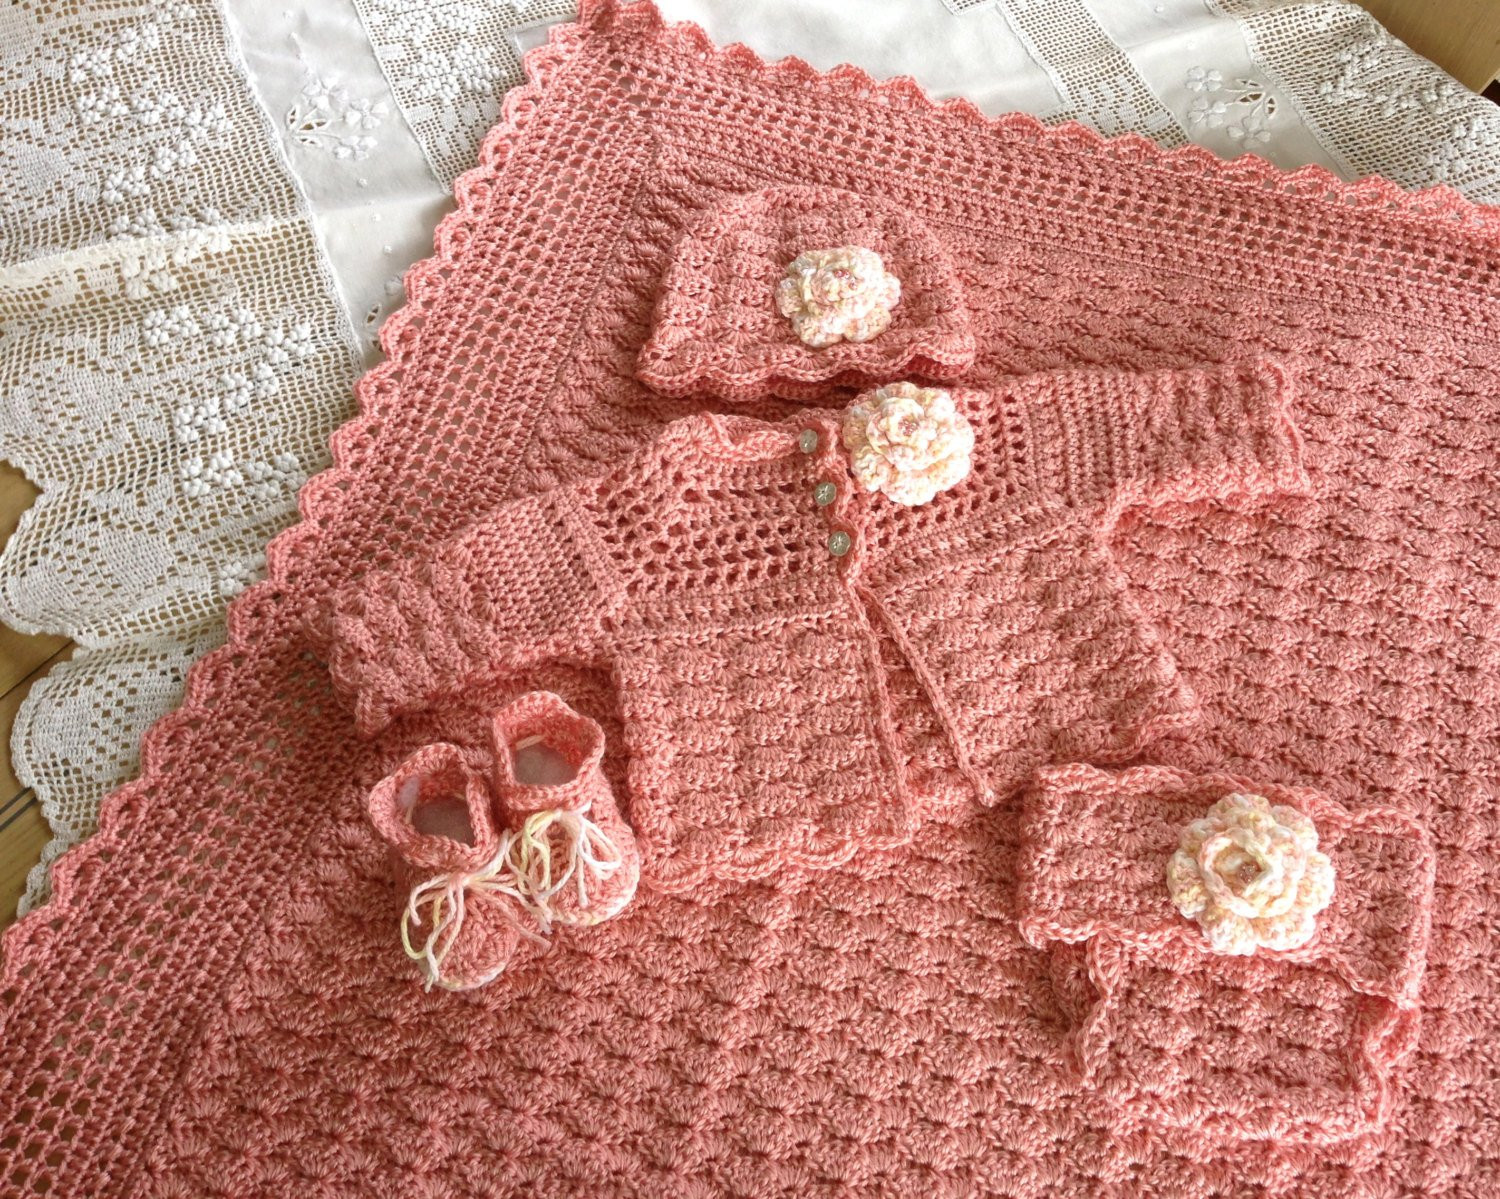 Free Crochet Baby Layette Patterns Elegant Crochet Pattern Baby Layette 5 Pieces Blanket Sweater Of Great 50 Pictures Free Crochet Baby Layette Patterns